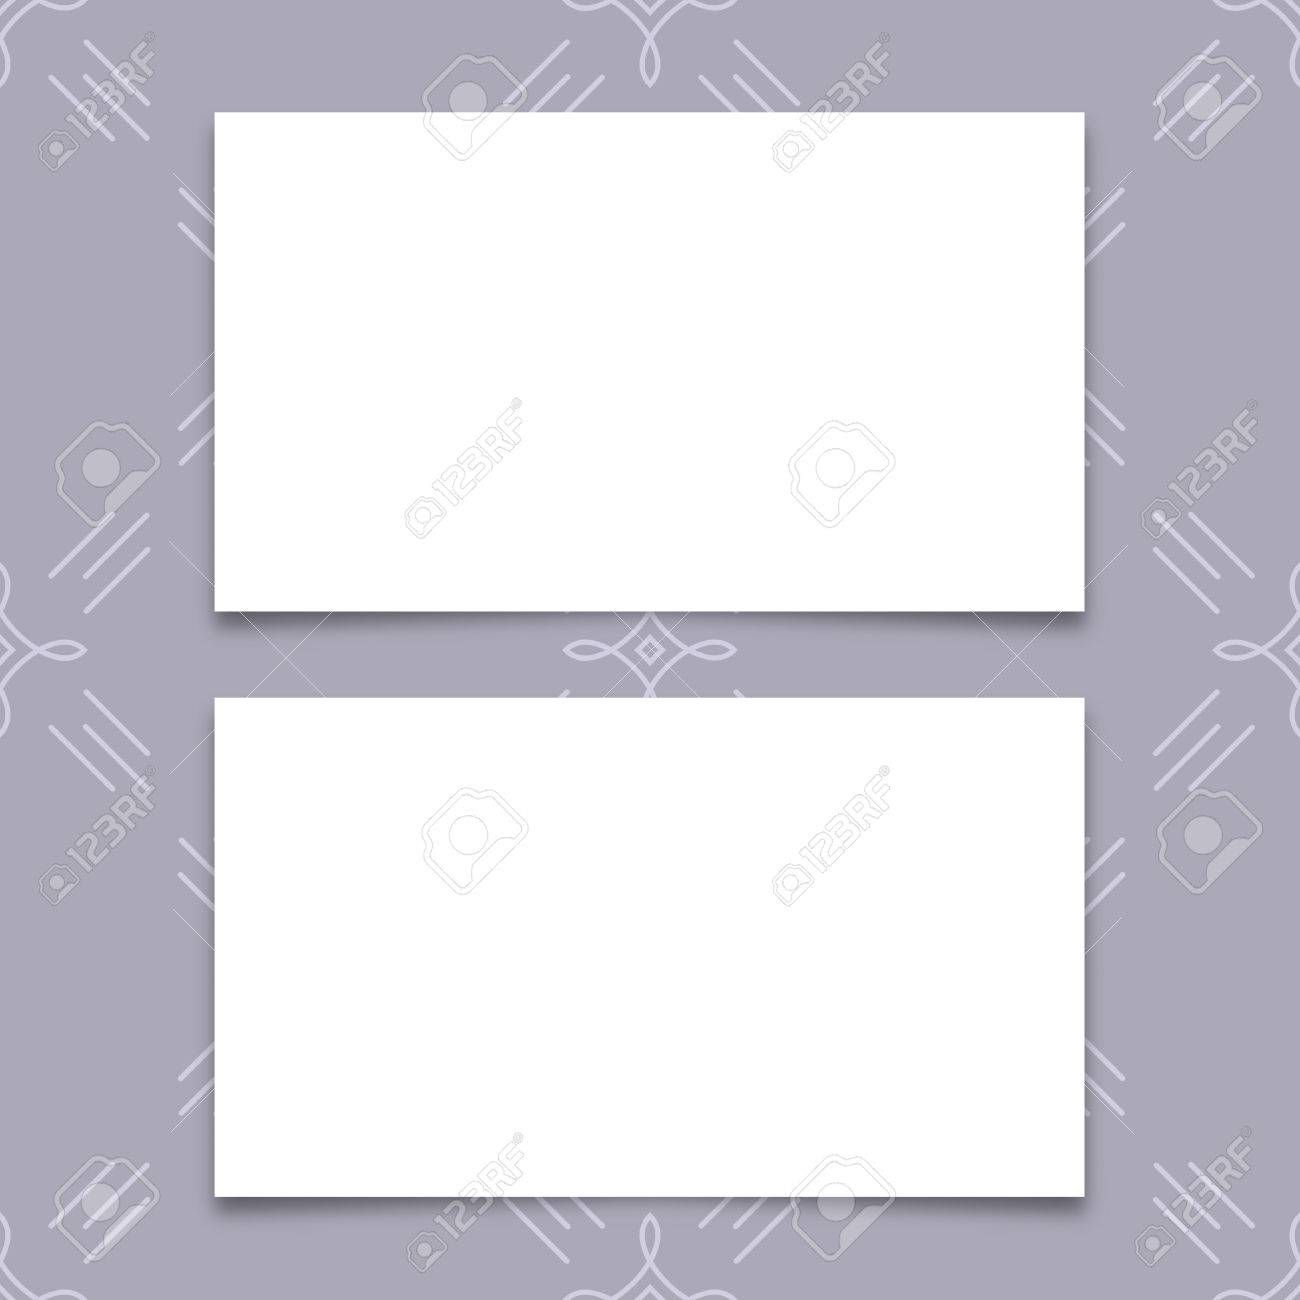 002 Awesome Free Blank Busines Card Template High Def  Templates Online Printable For Word DownloadFull